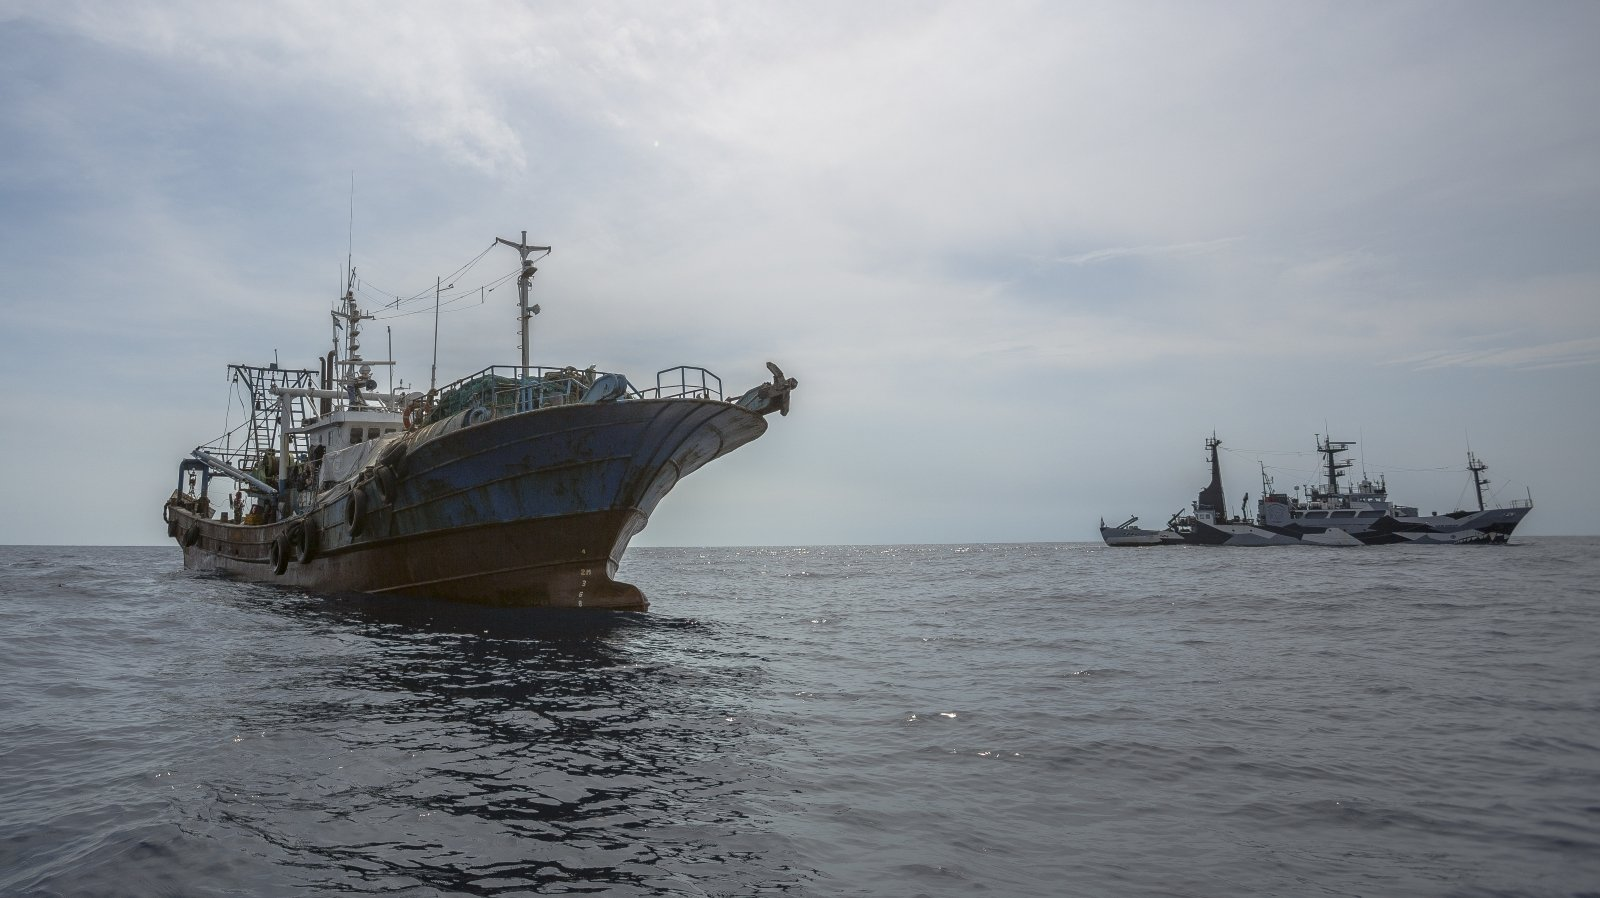 The Sam Simon Intercepts Trawler as it Attempts to Flee Detention in Liberia